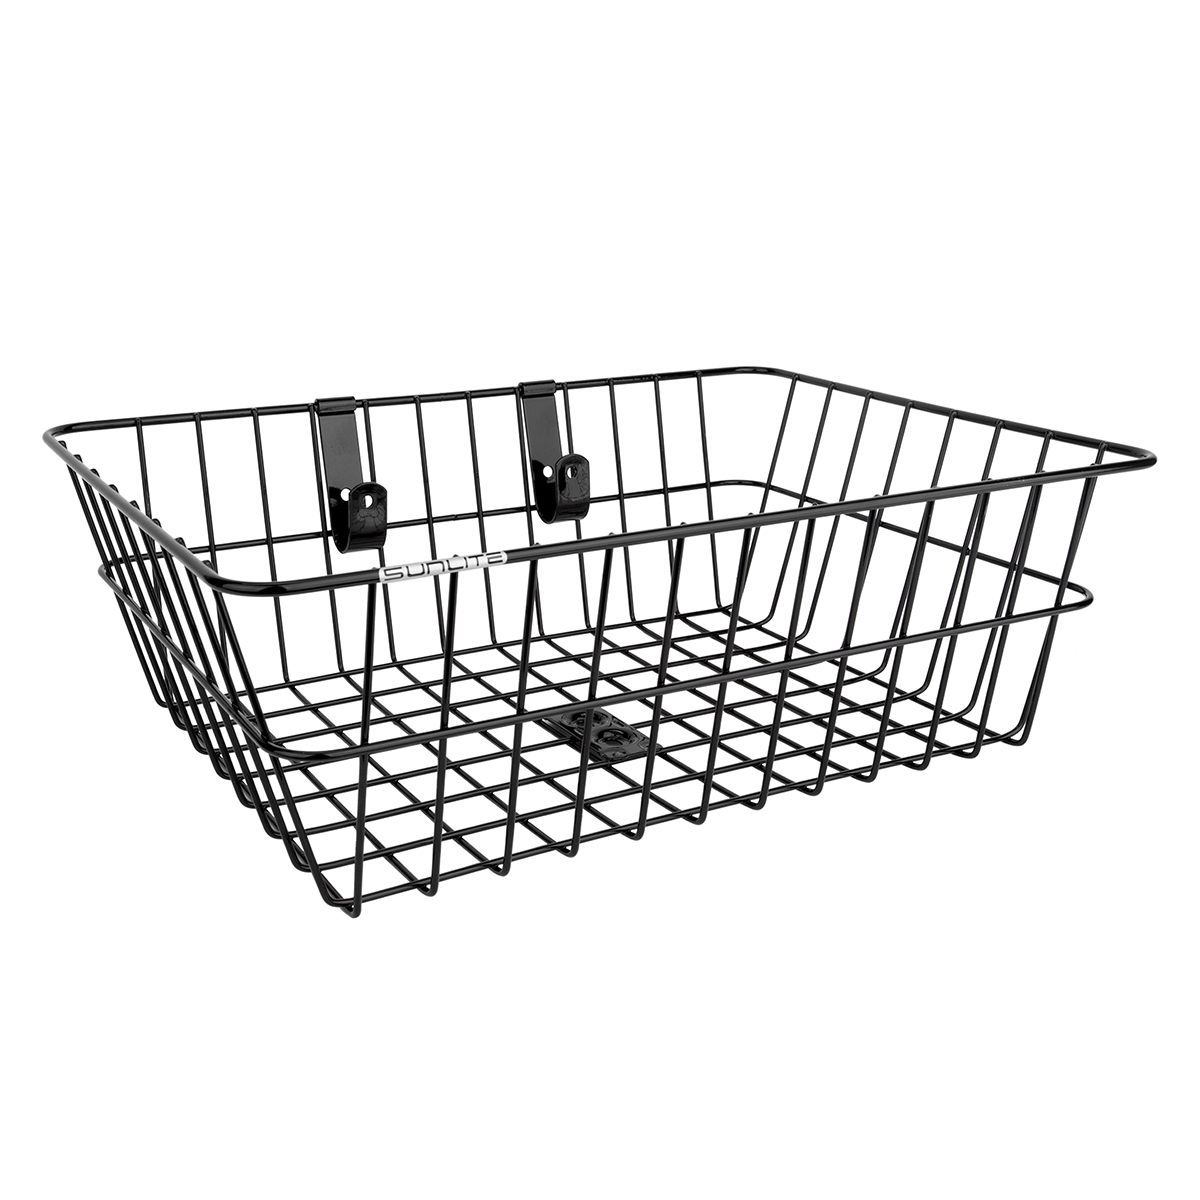 Sunlite Front Mesh Bottom Basket Wire Black with Fixed Hardware to fork 14x9x9